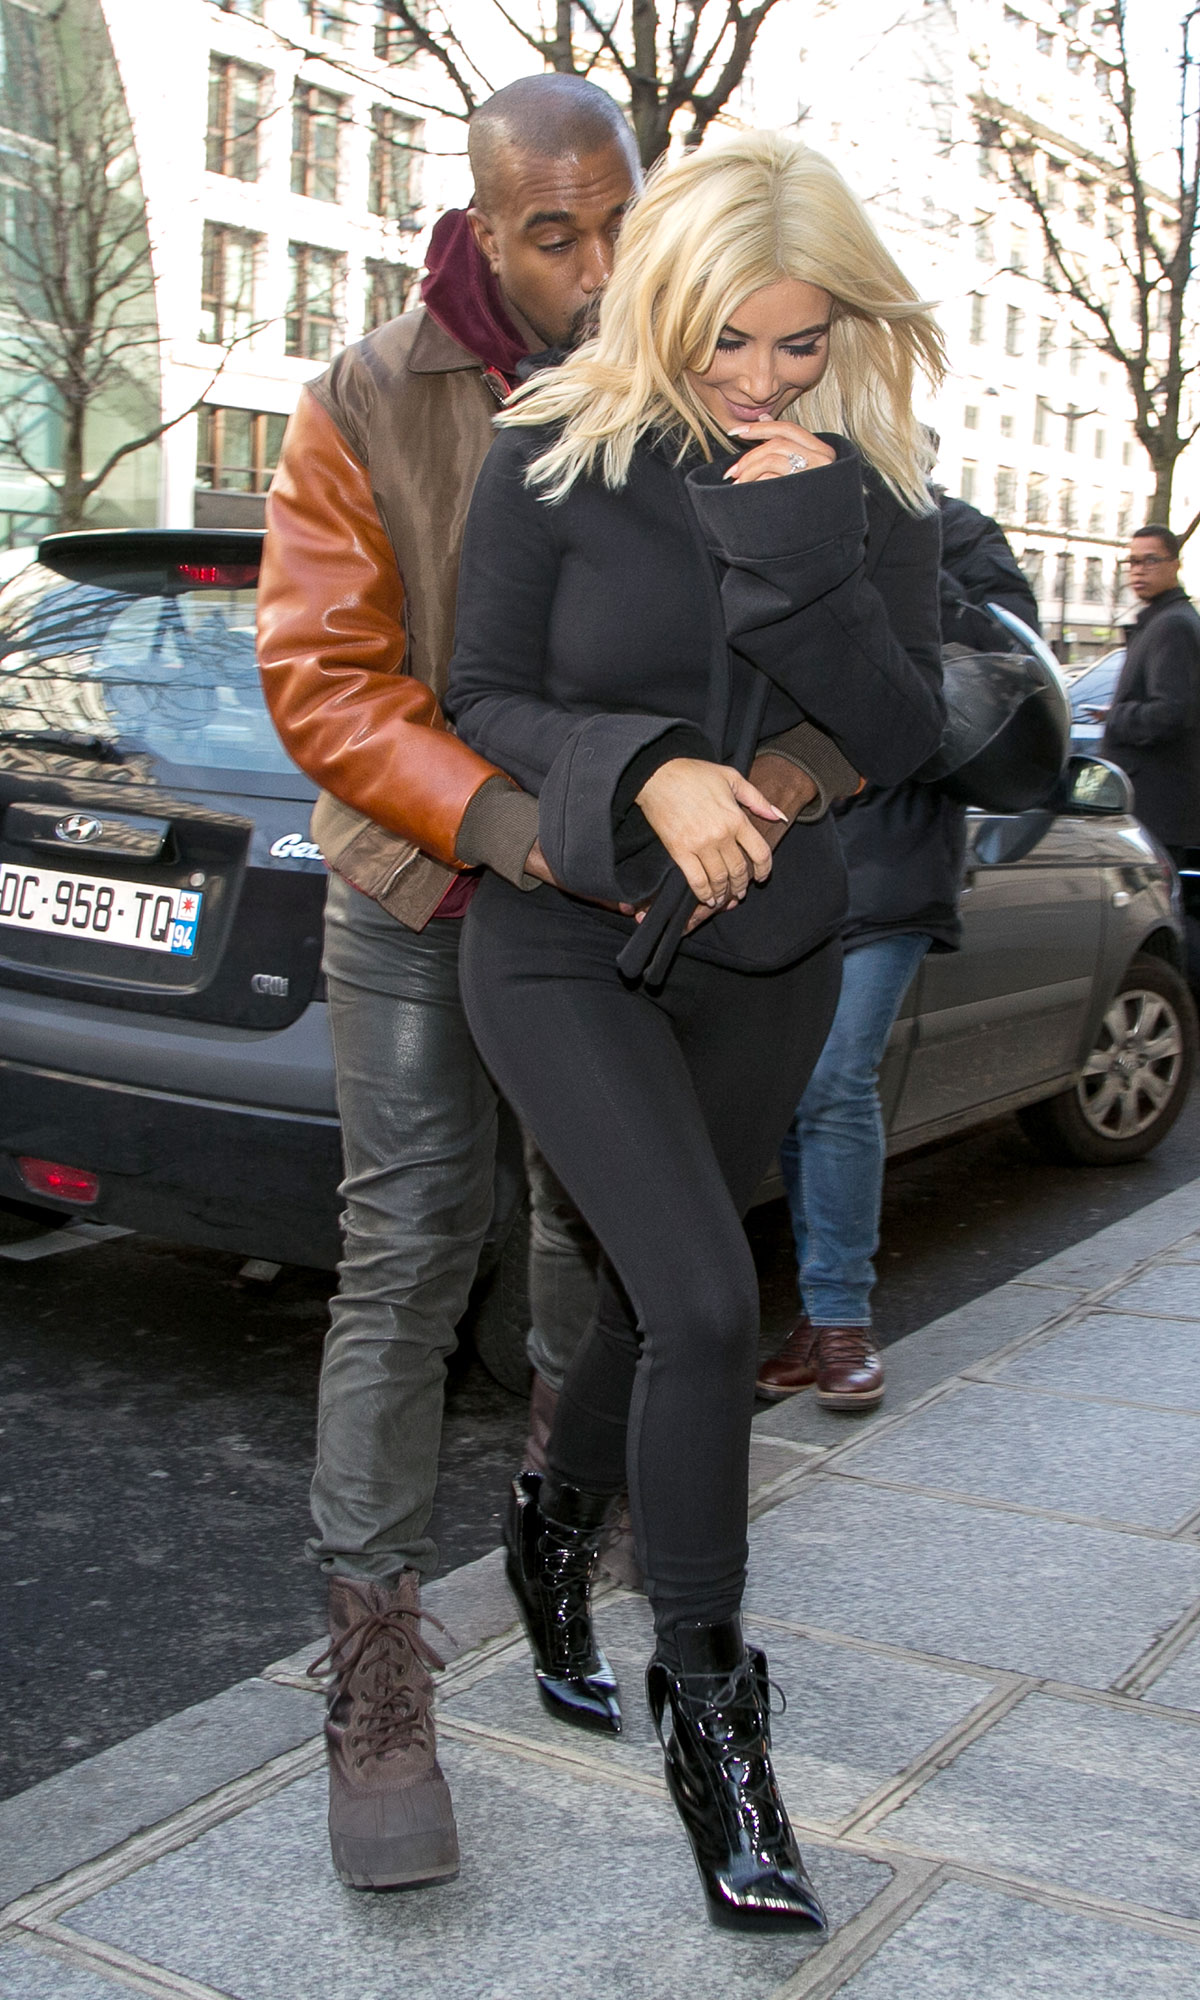 Kim Kardashian West and Kanye West Sighting In Paris -  March 06, 2015